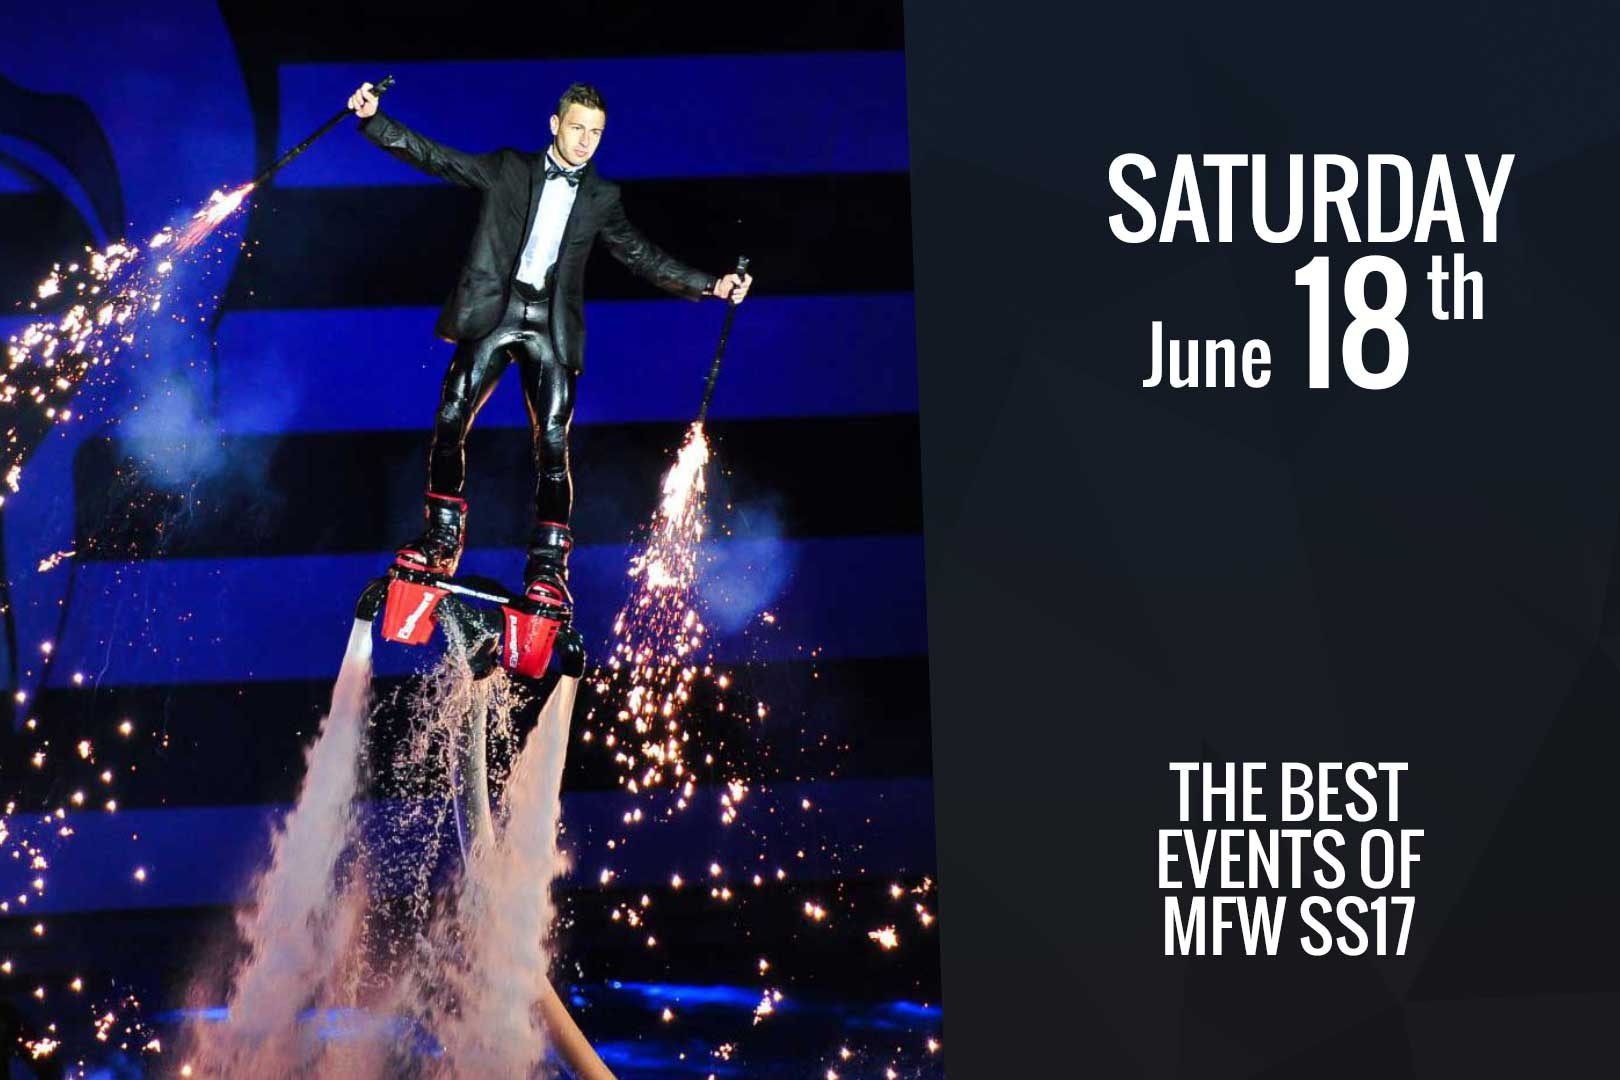 Saturday June 18th: the best events